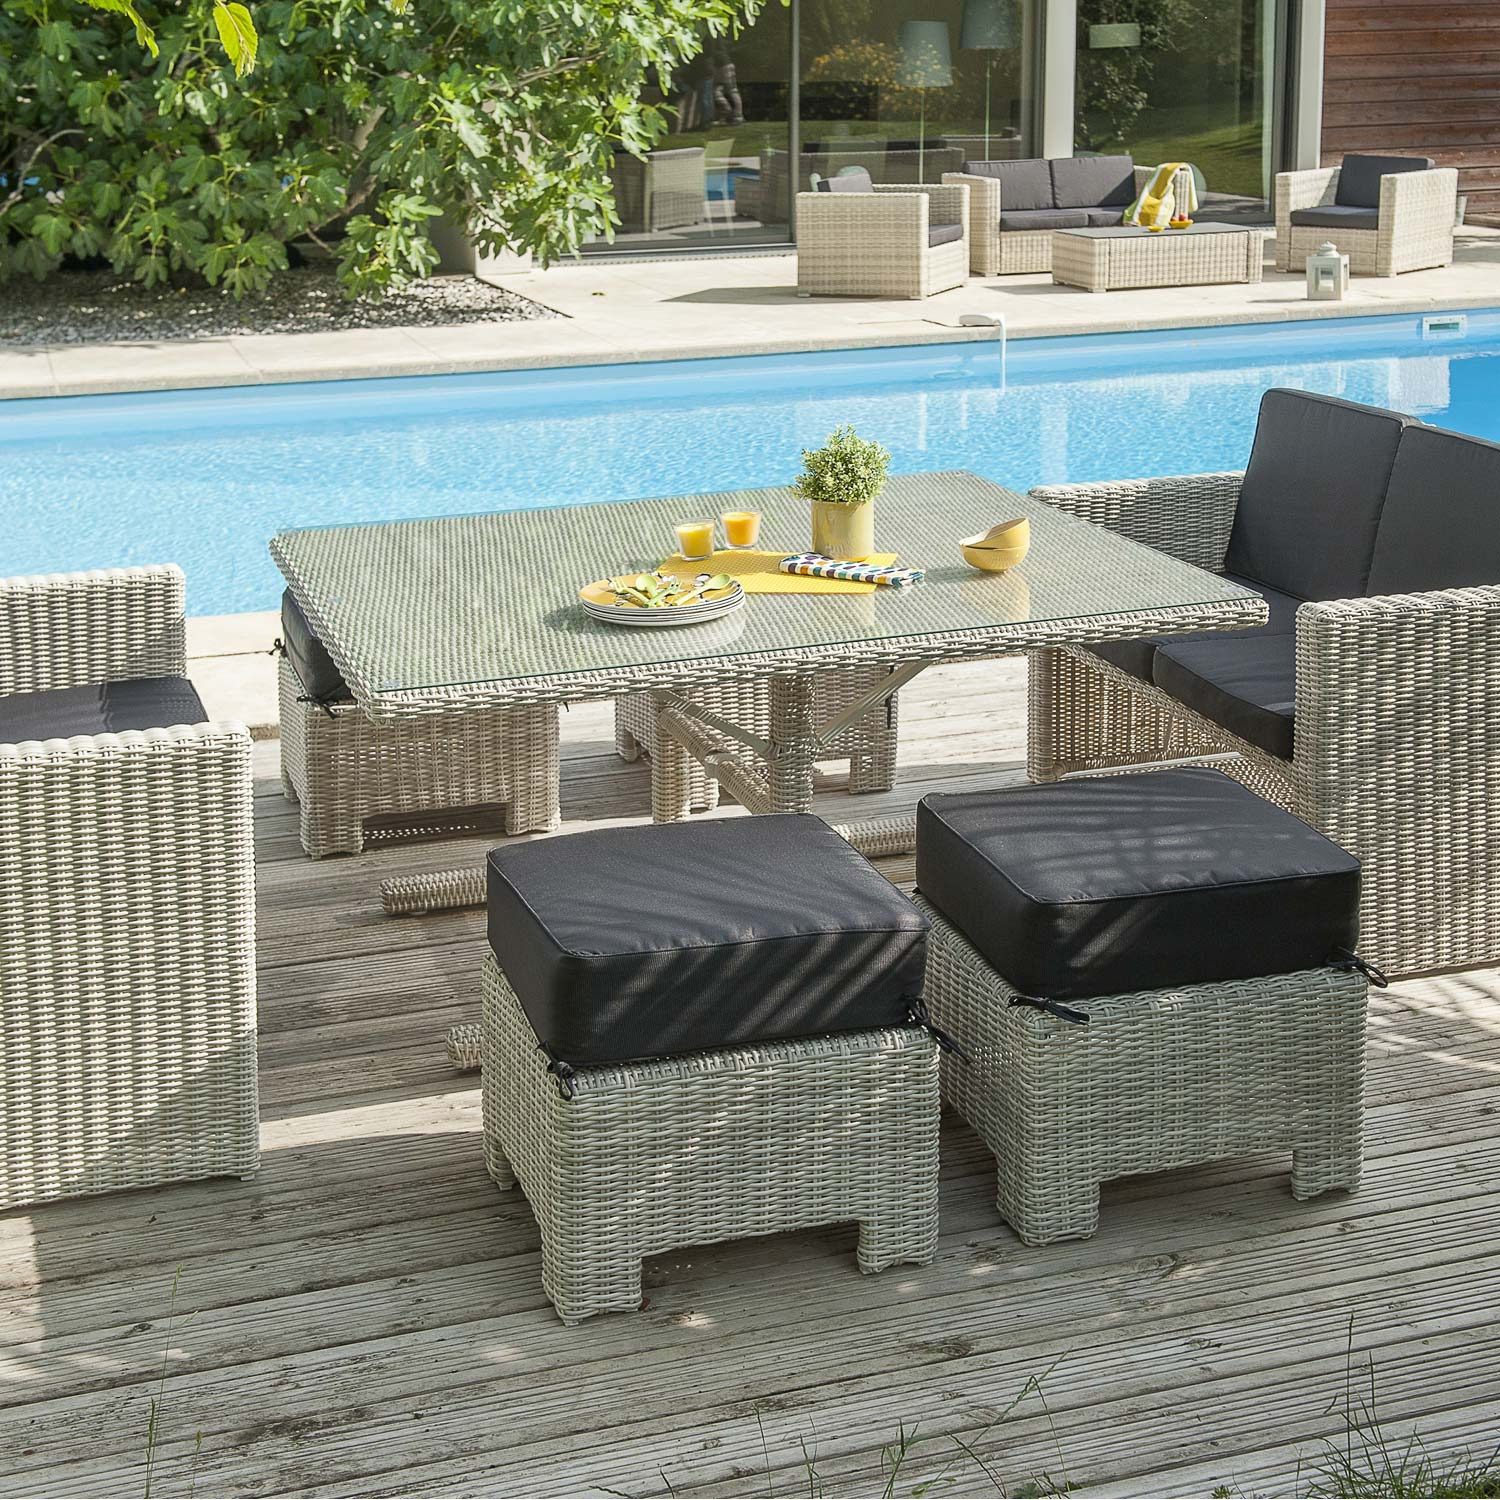 Salon jardin oceane lunch blanc 1 table 2 banquettes 4 poufs leroy merlin - Leroy merlin salon jardin ...